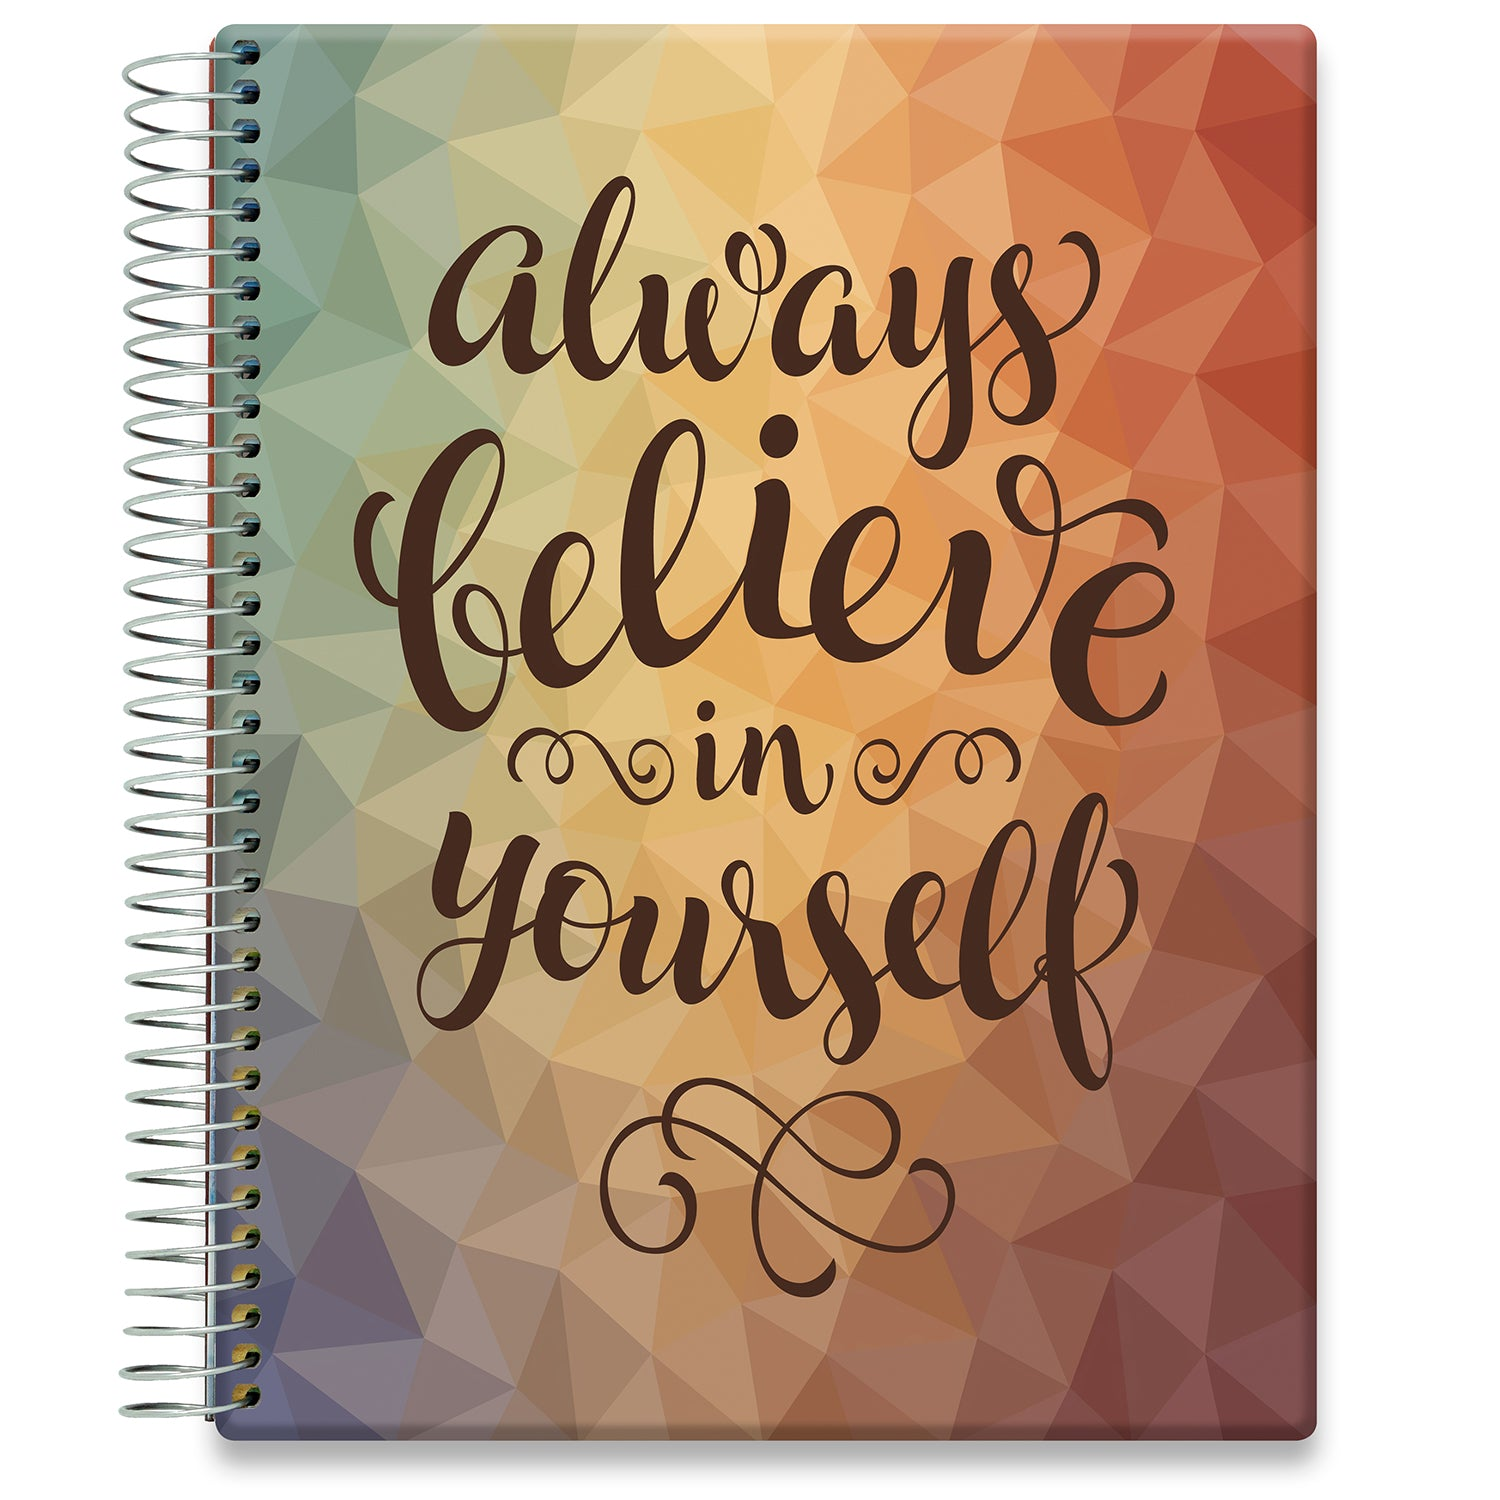 Planner 2021-2022 • April 2021 to June 2022 Academic Year • 8.5x11 Hardcover • Always Believe